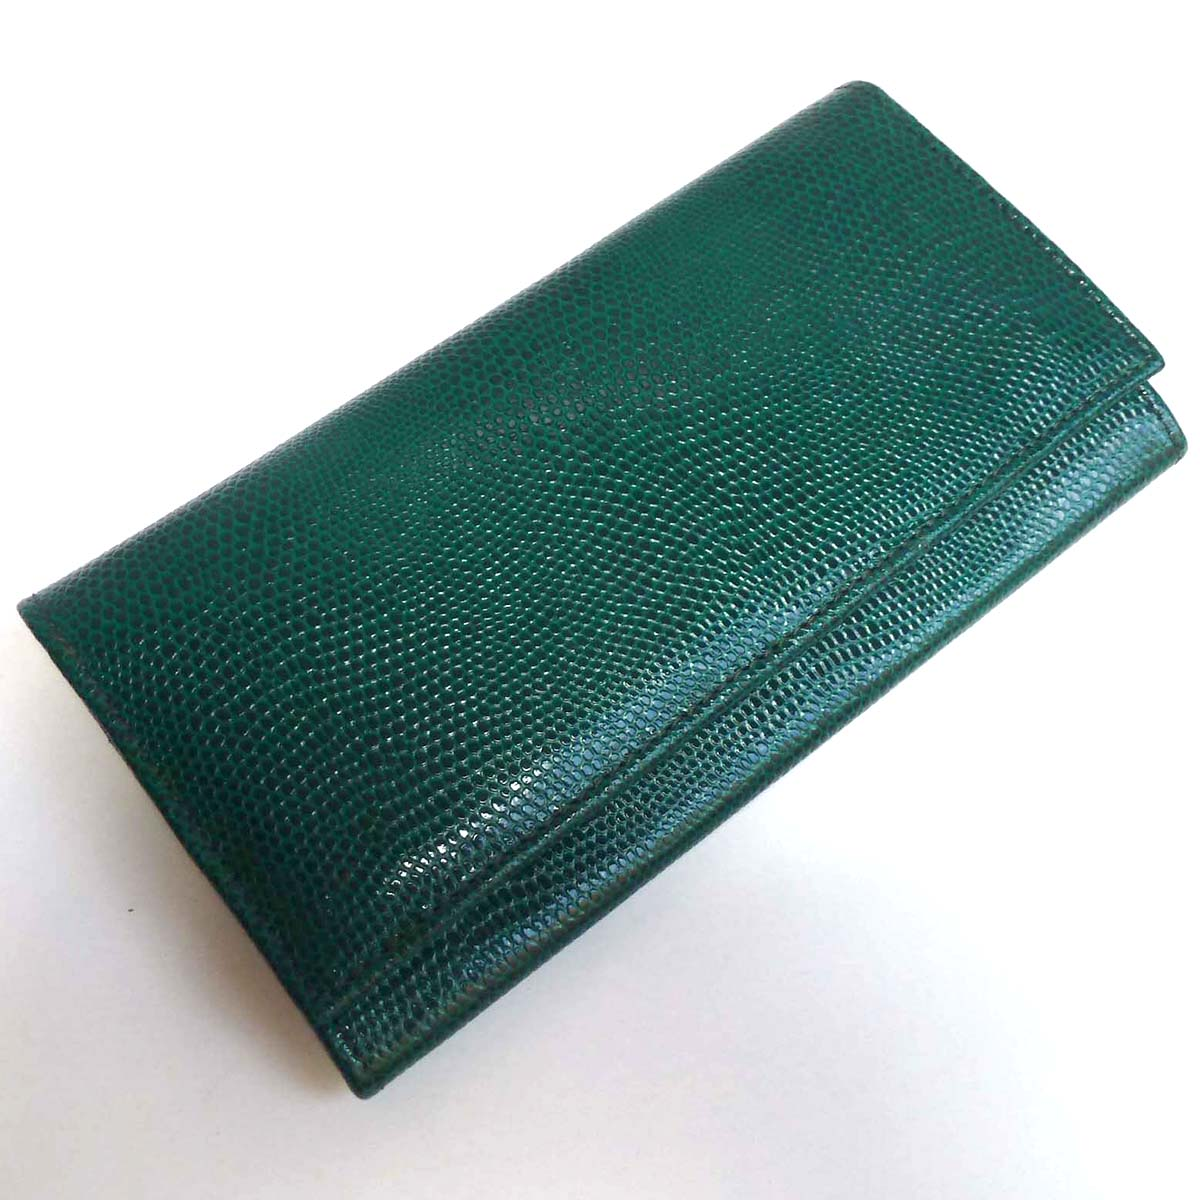 1691WALLET WITH FLAP by Bottega Fiorentina